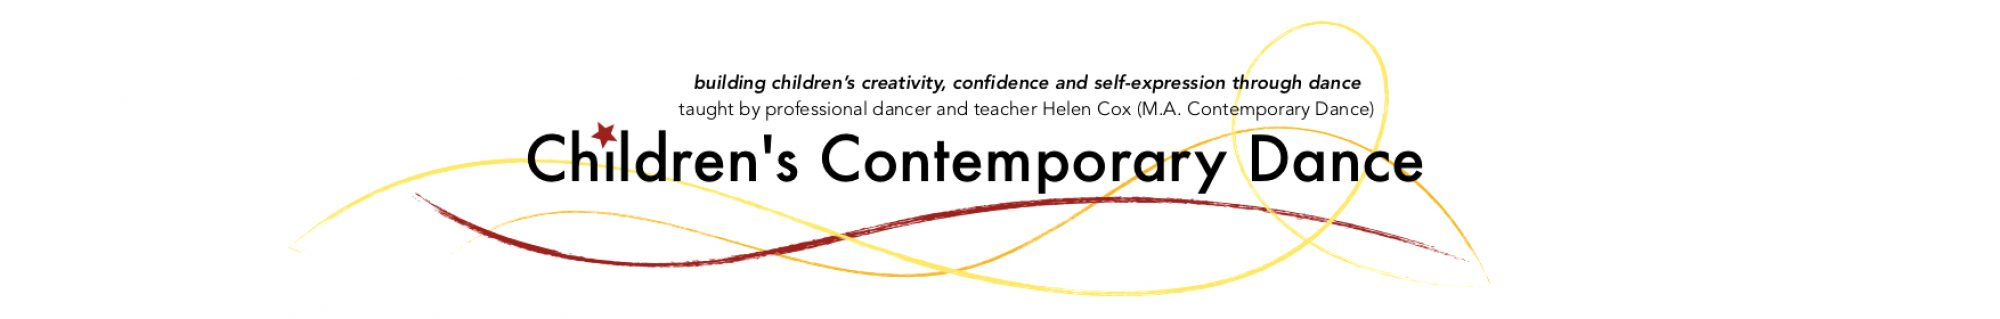 Children's Contemporary Dance